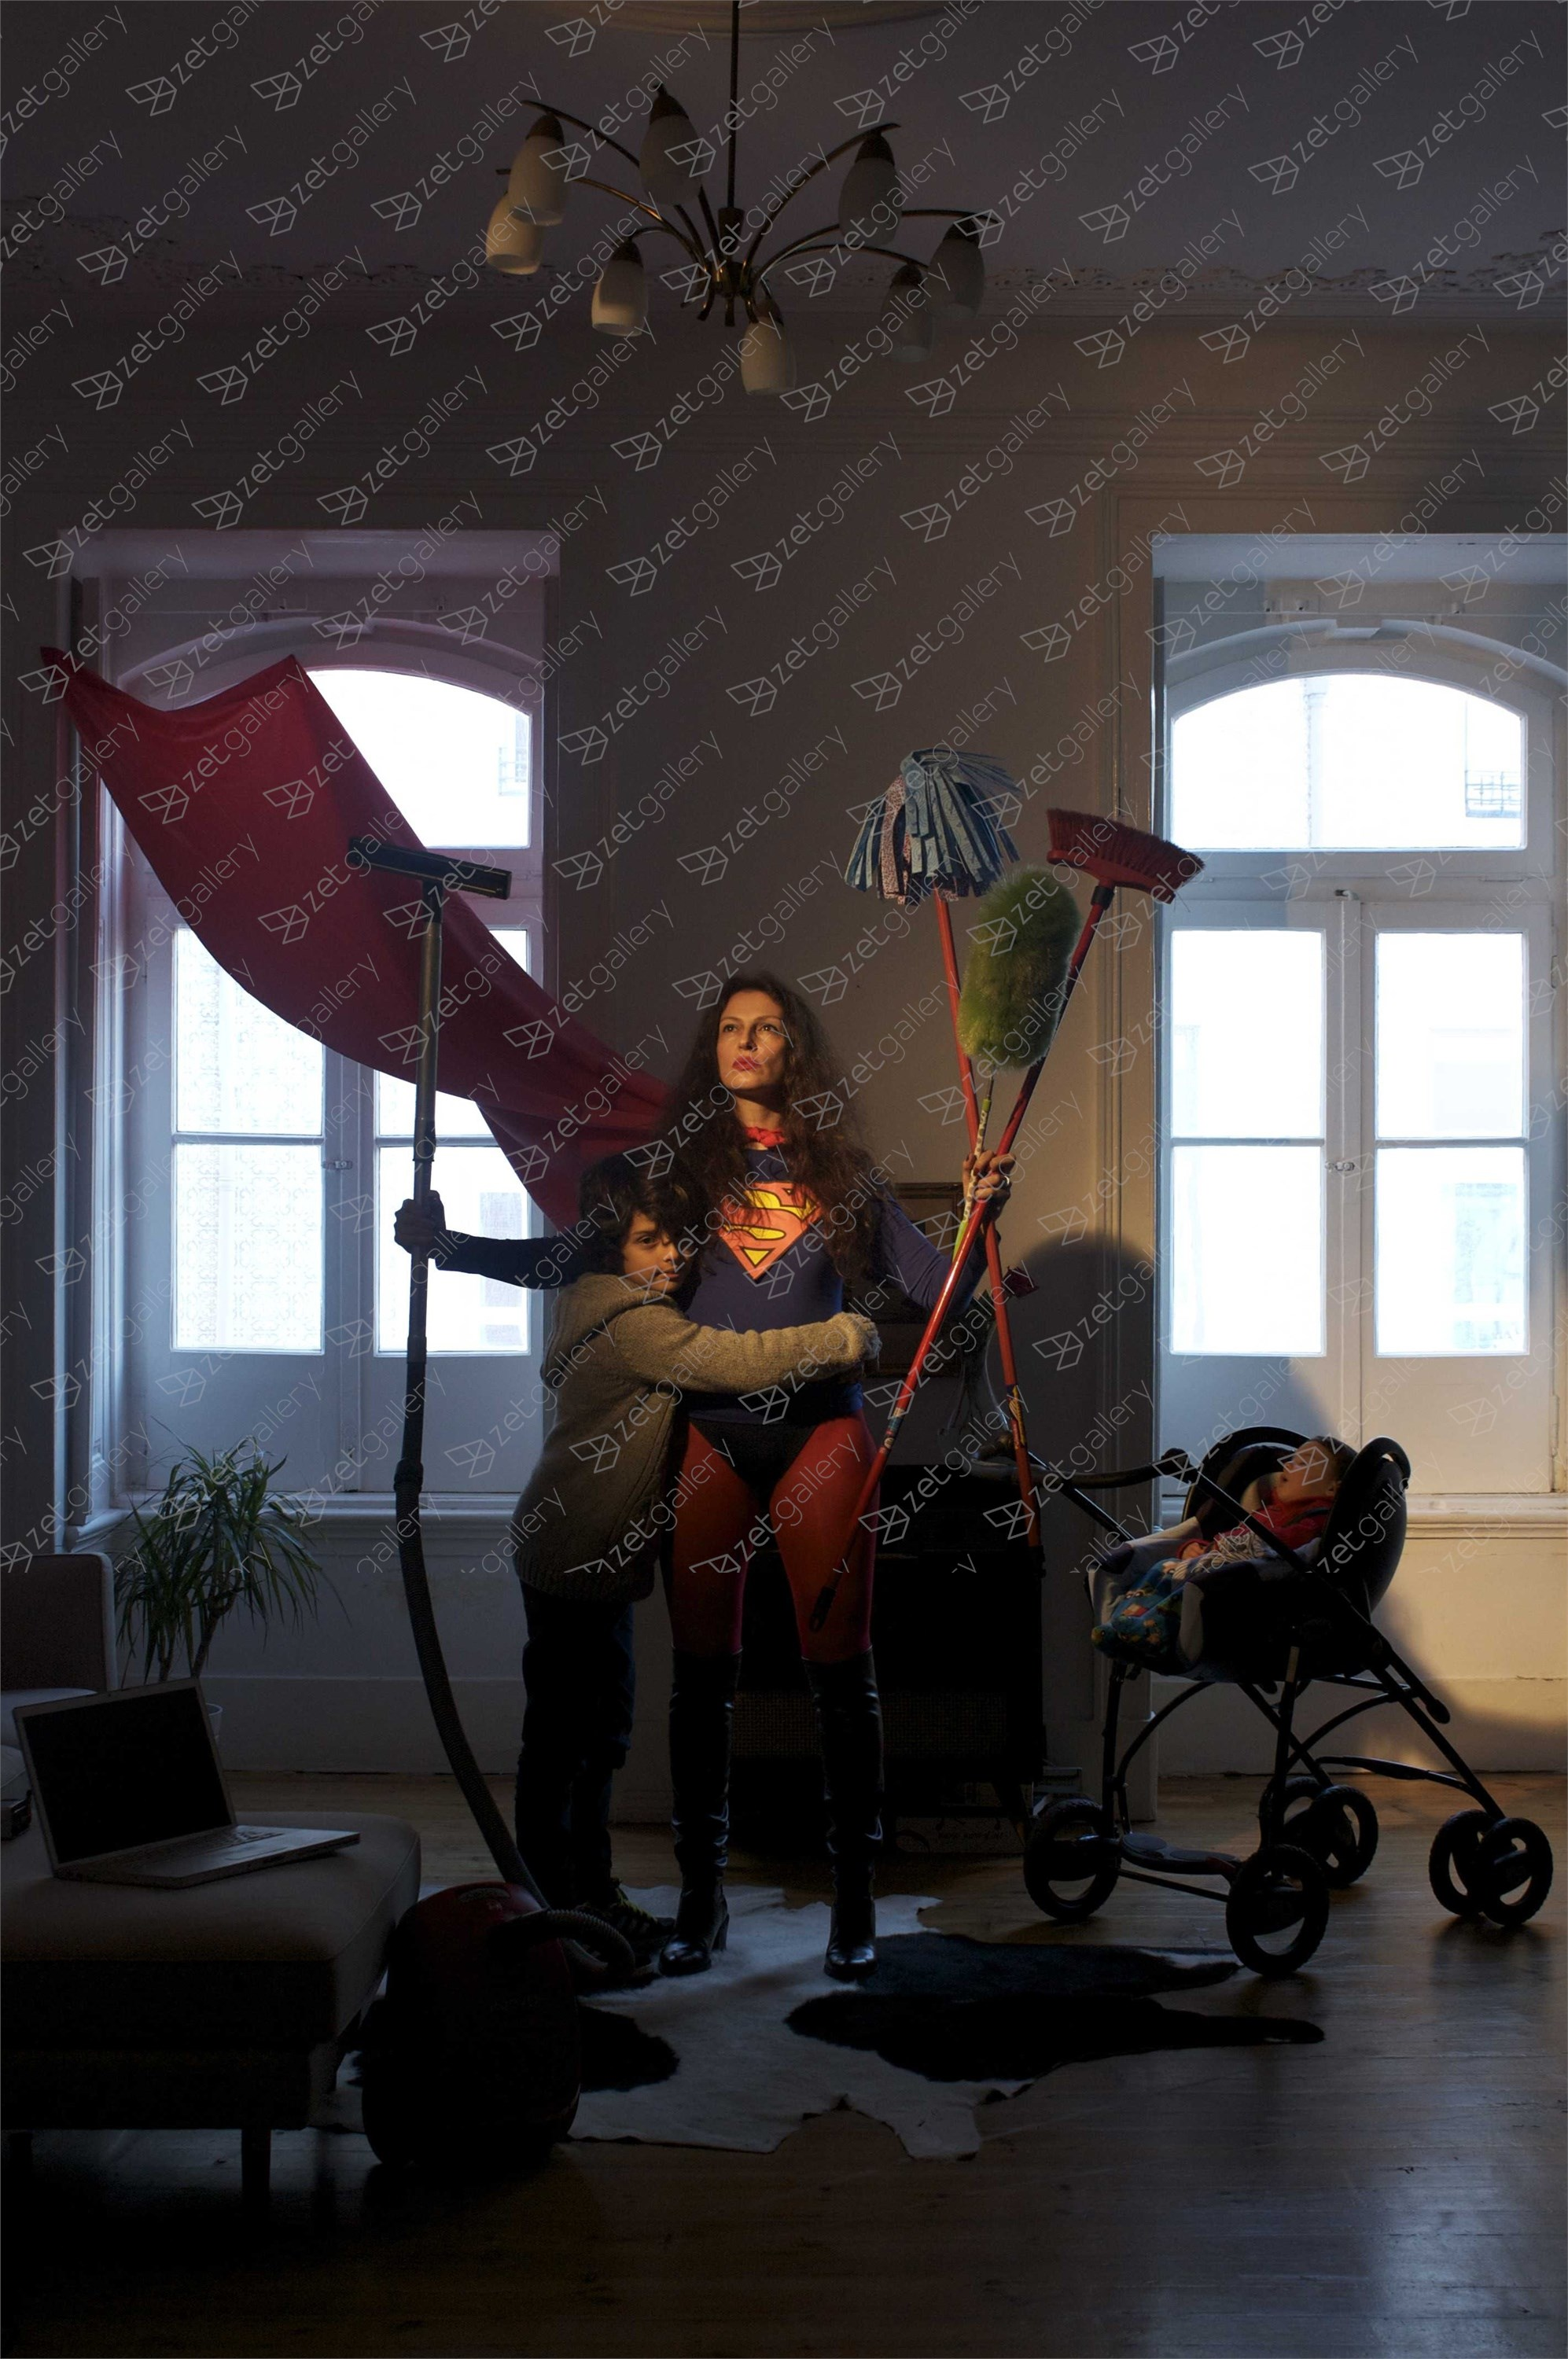 Supermom, original Human Figure Digital Photography by Claudia Clemente